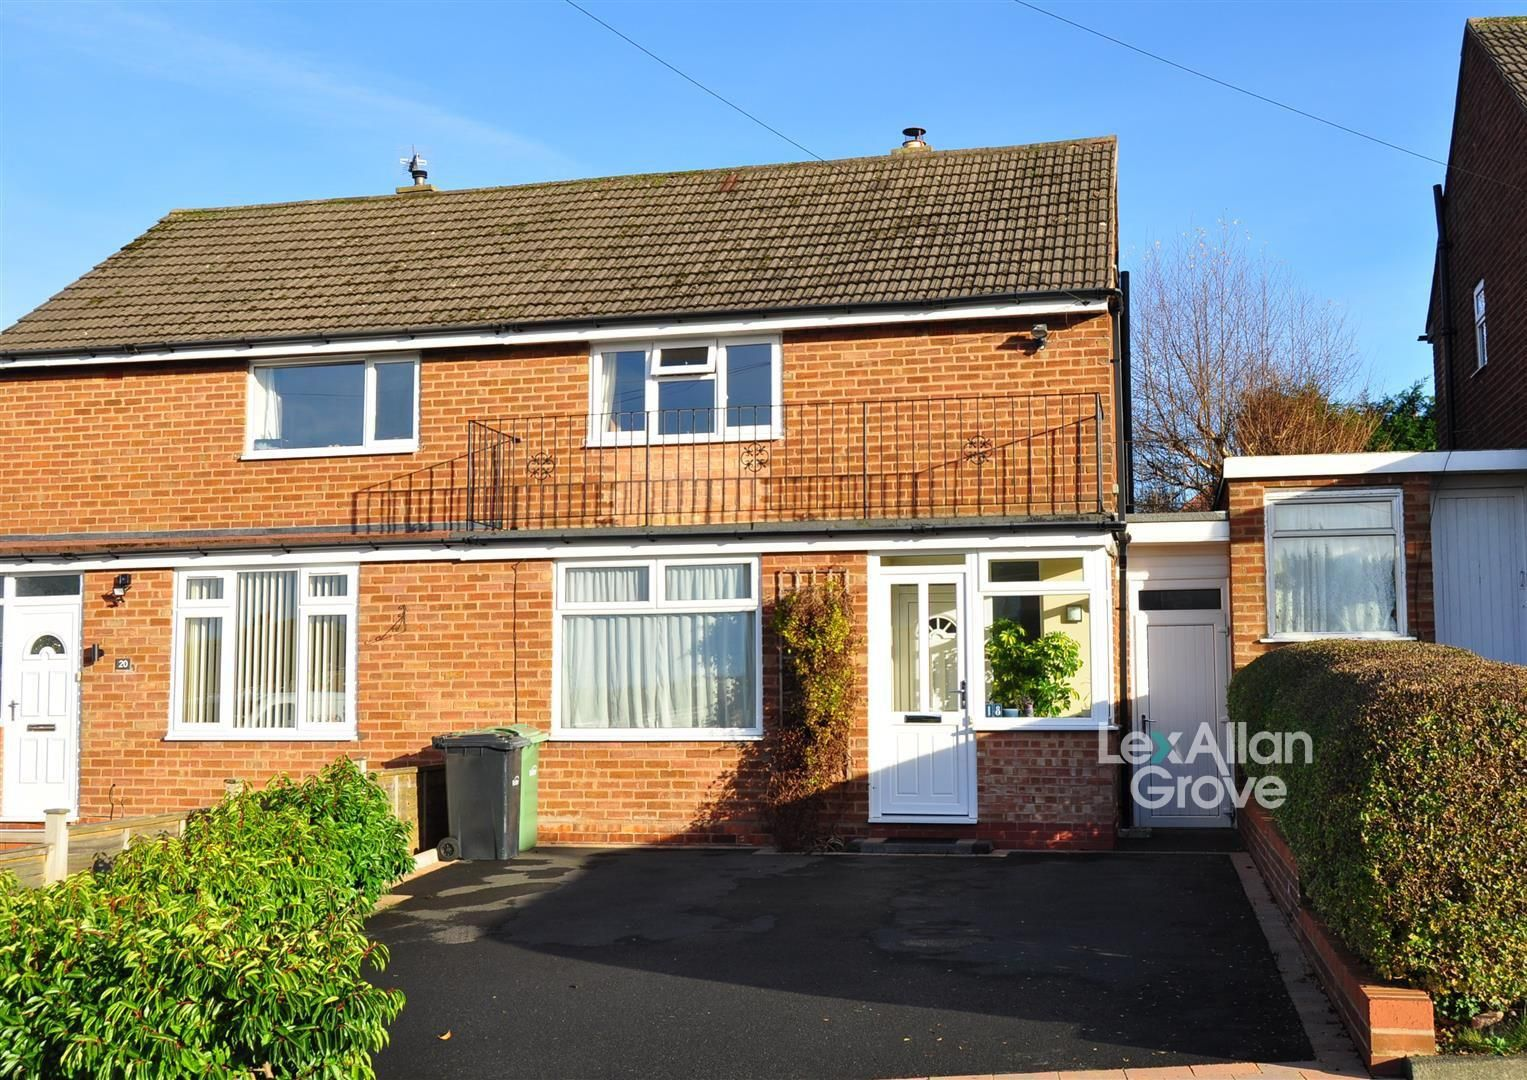 2 bed semi-detached for sale, B63